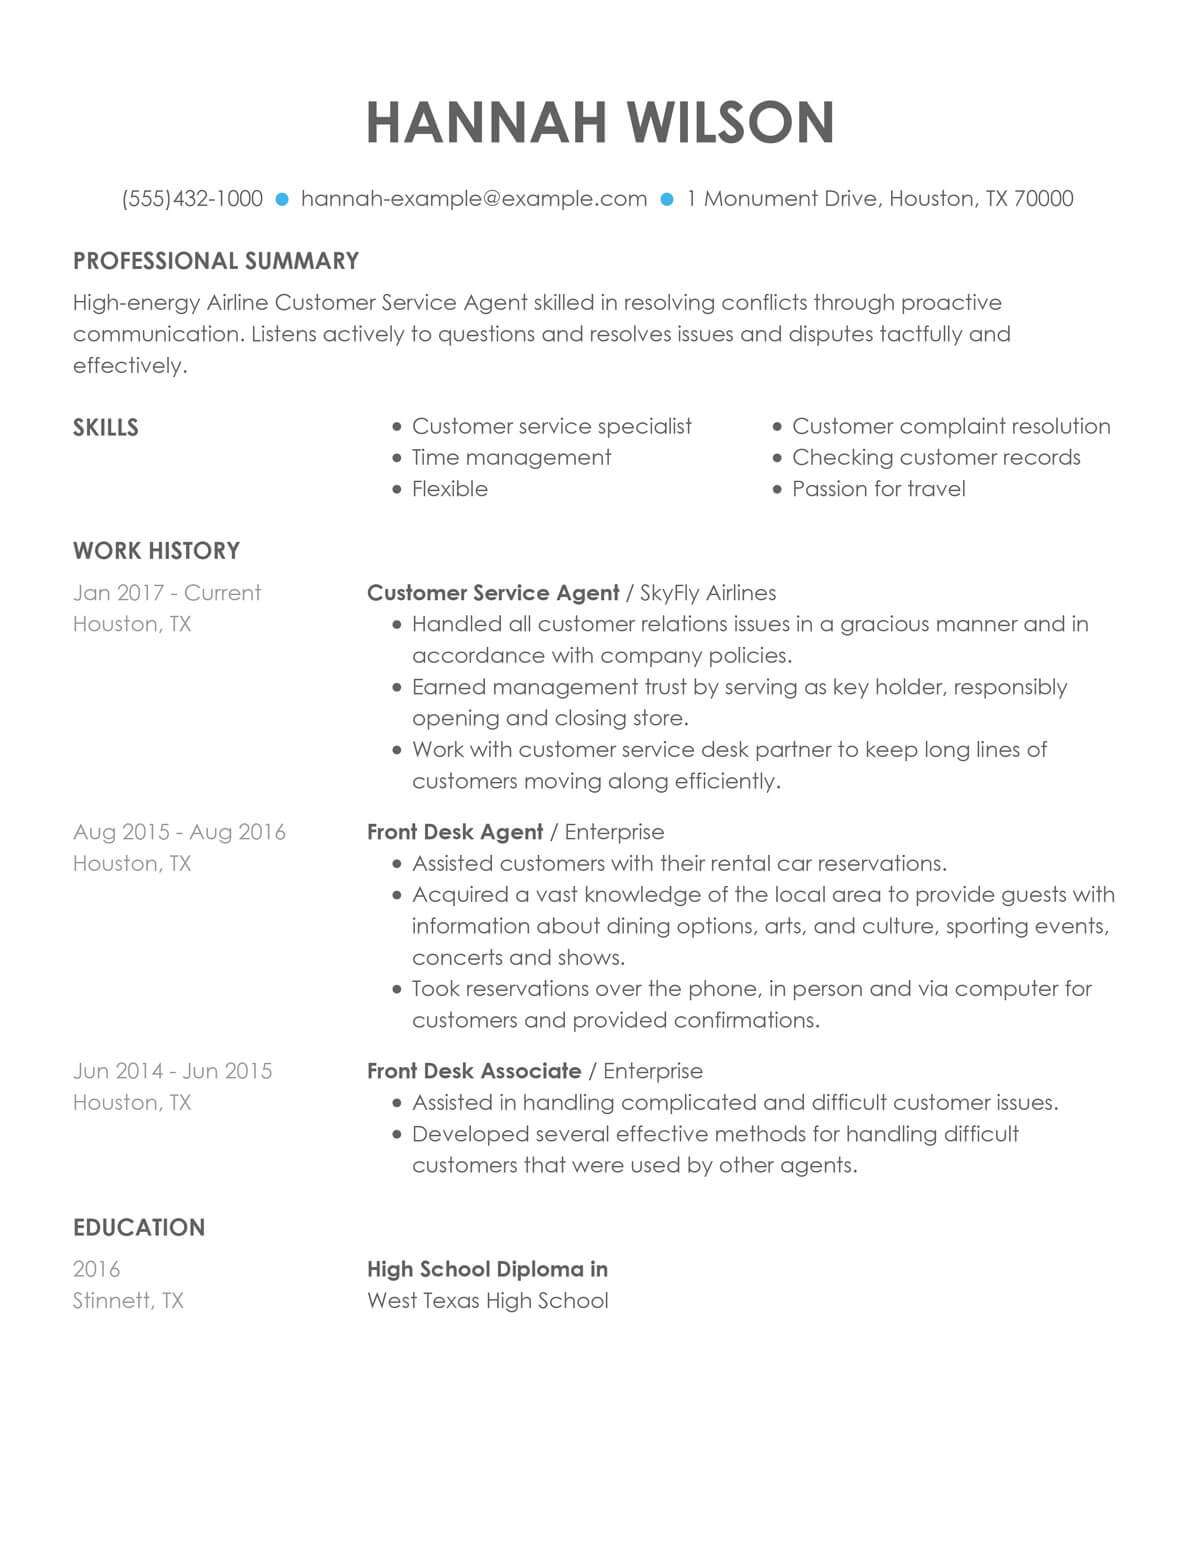 customize our customer representative resume example qualifications for service airline Resume Qualifications For Customer Service Representative Resume